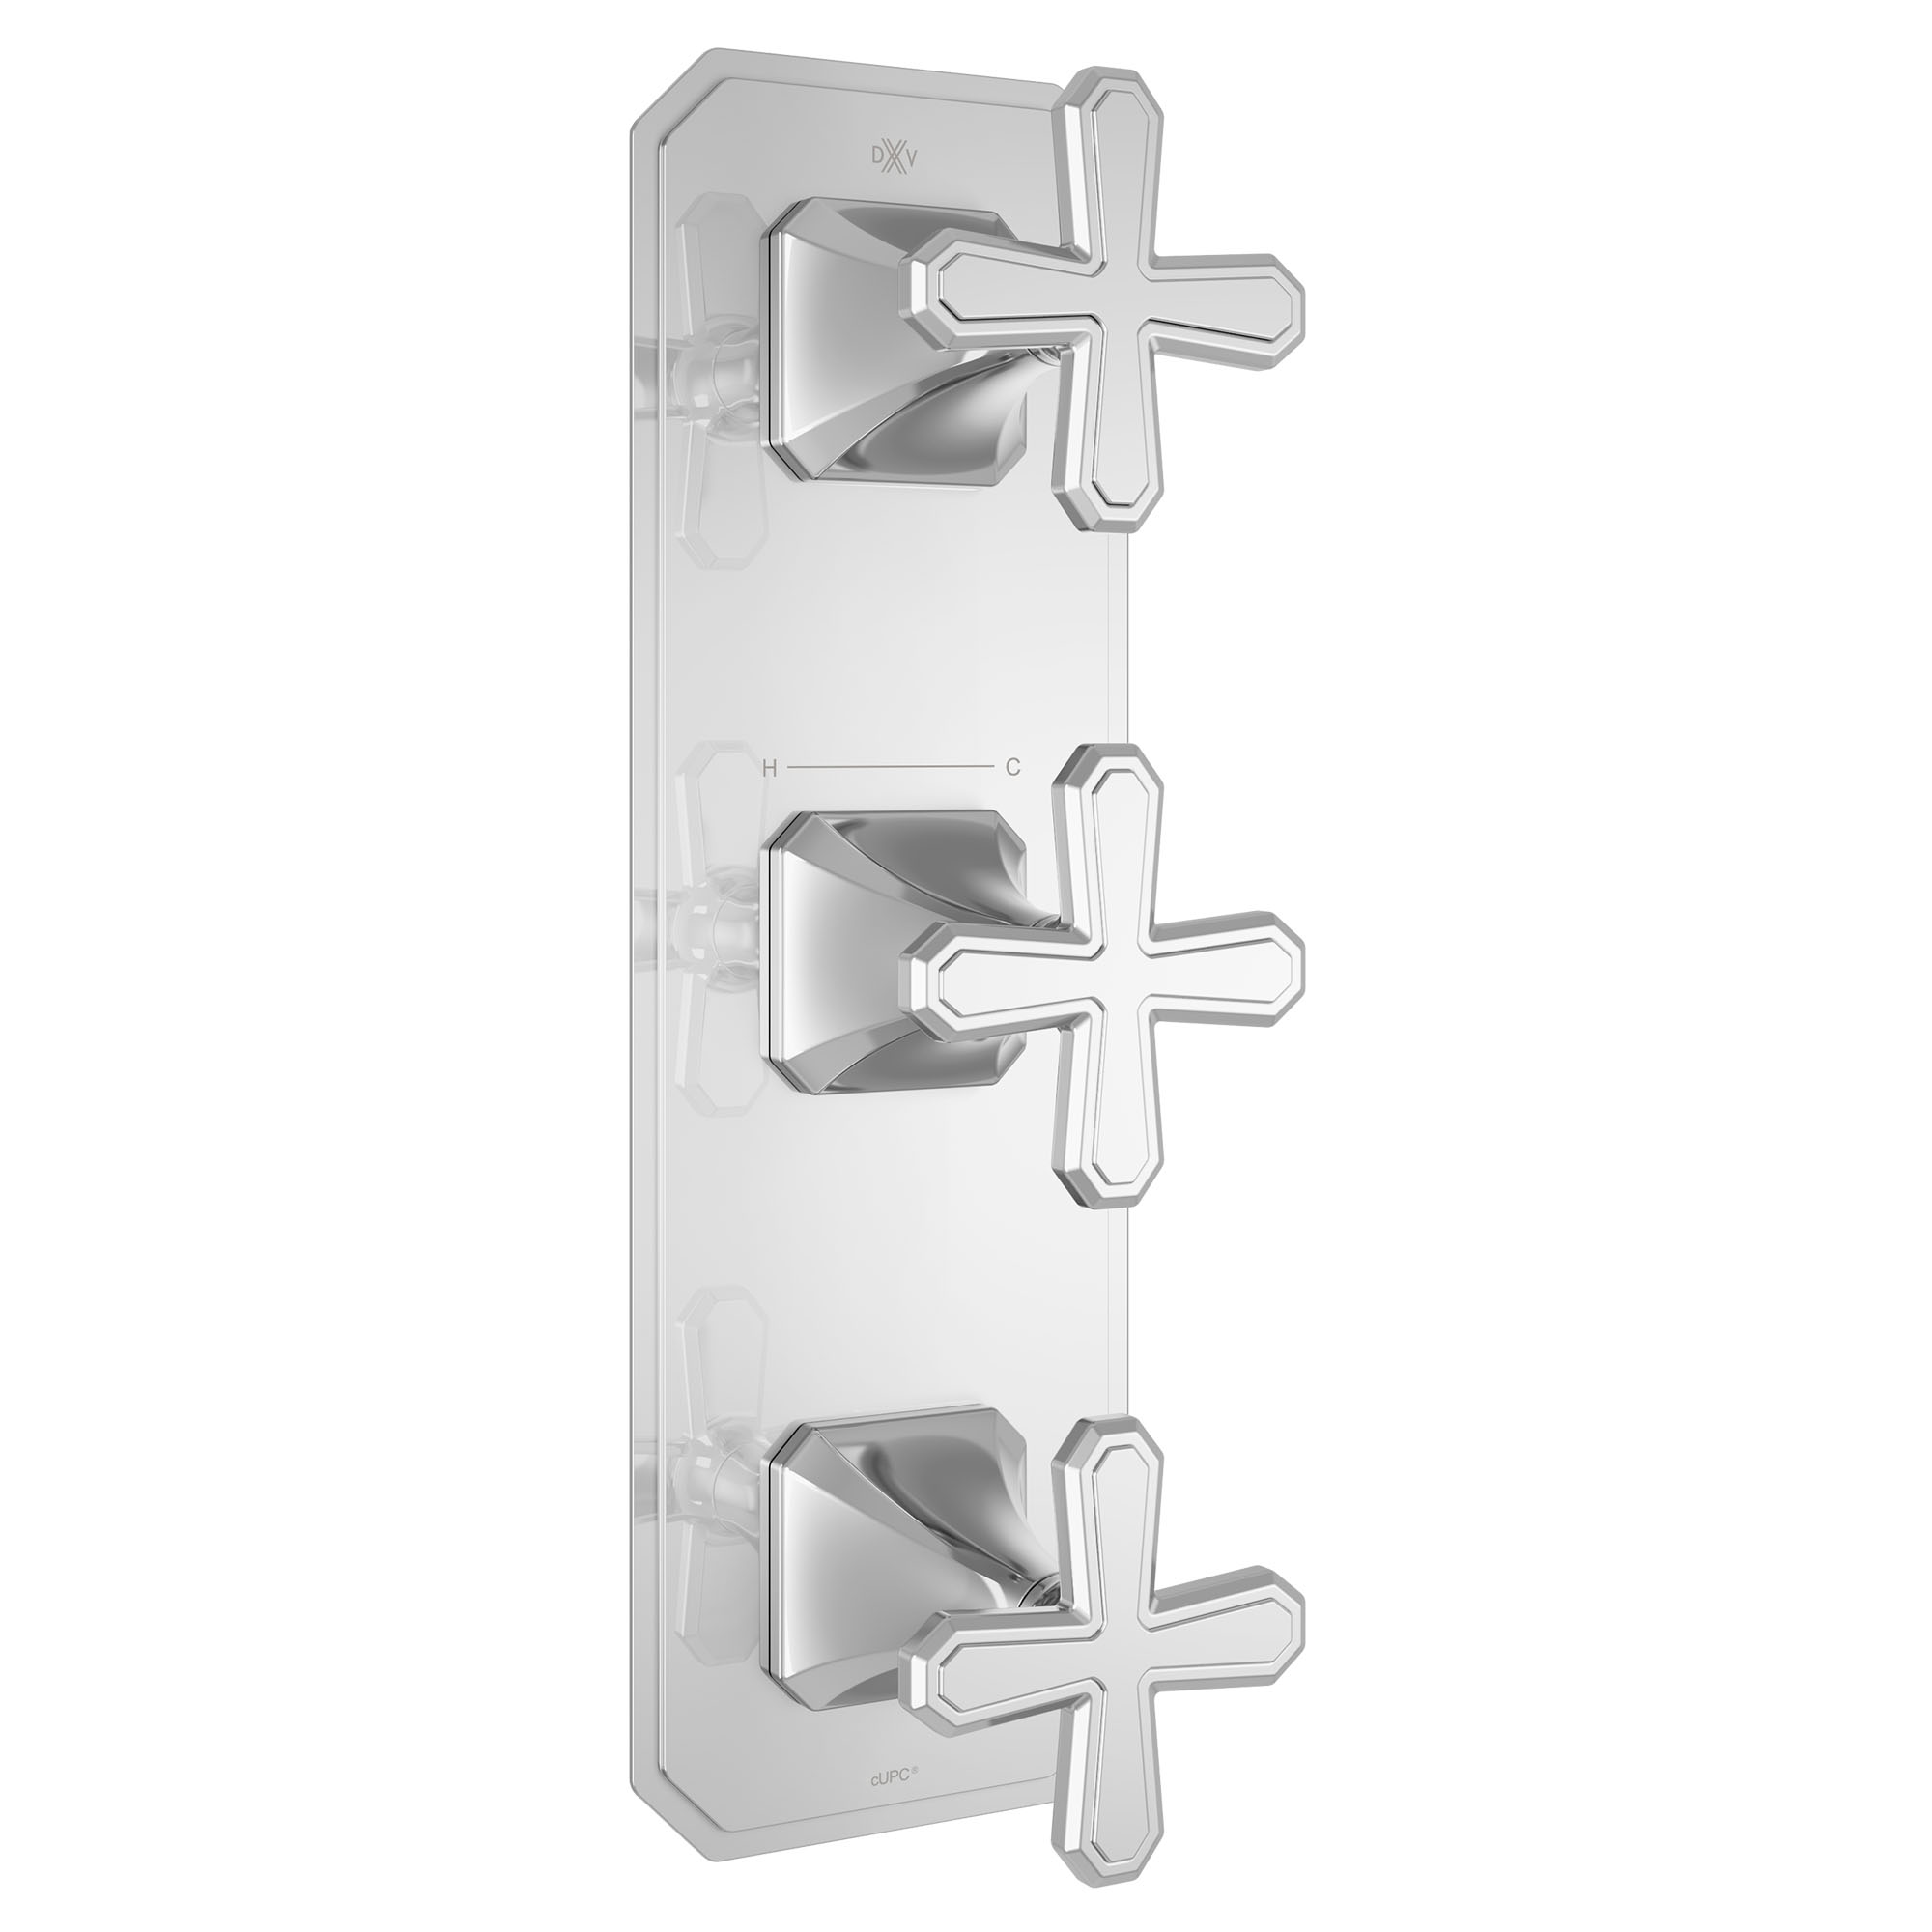 Belshire Three-Handle Thermostatic Valve Trim With Cross Handles